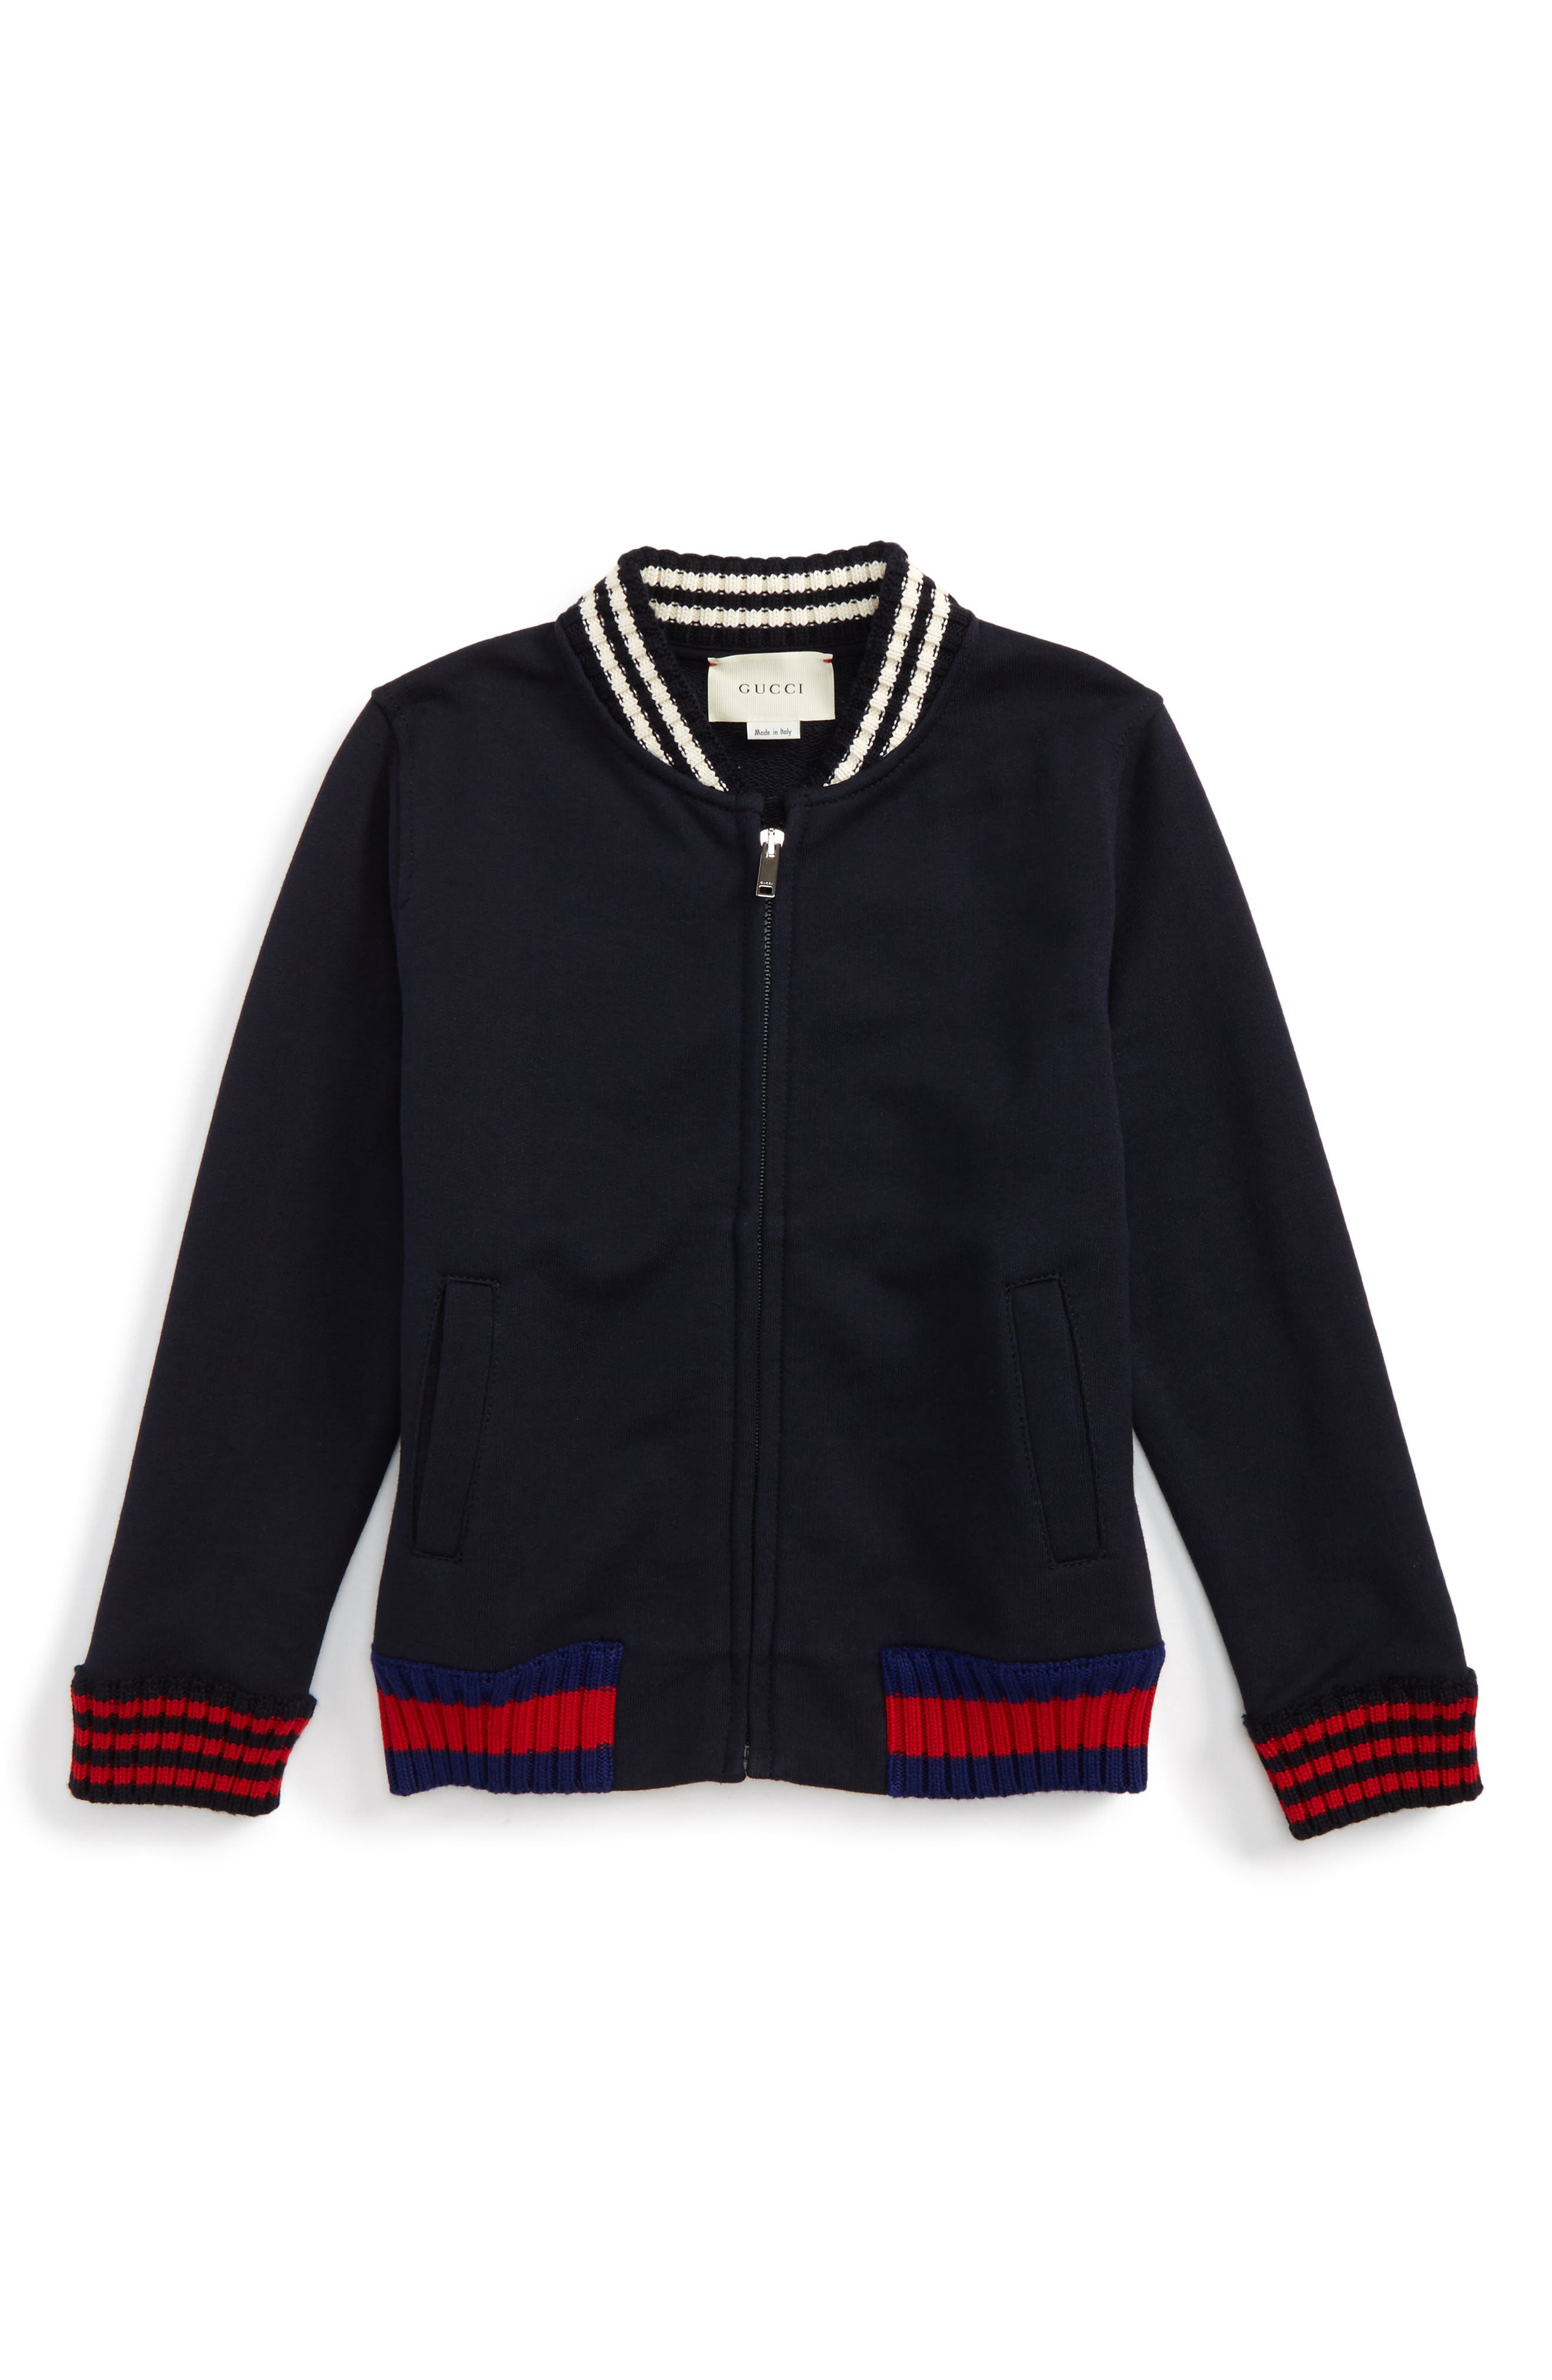 Alternate Image 1 Selected - Gucci Rib Knit Trim Front Zip Sweatshirt (Little Boys & Big Boys)